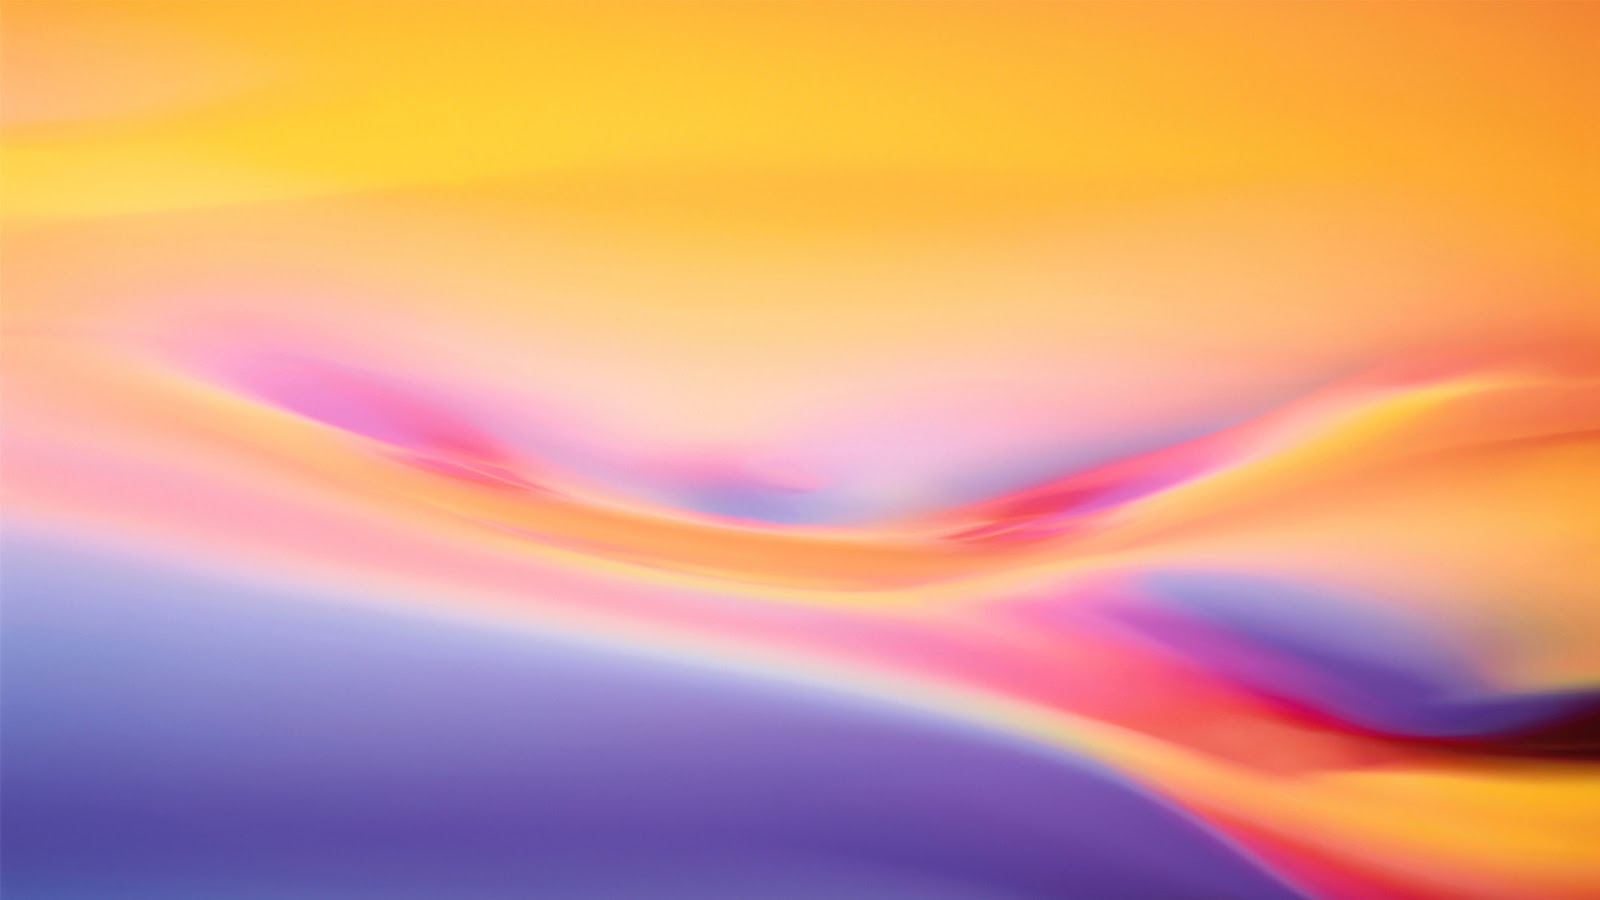 hq definition abstract photos - photo #9